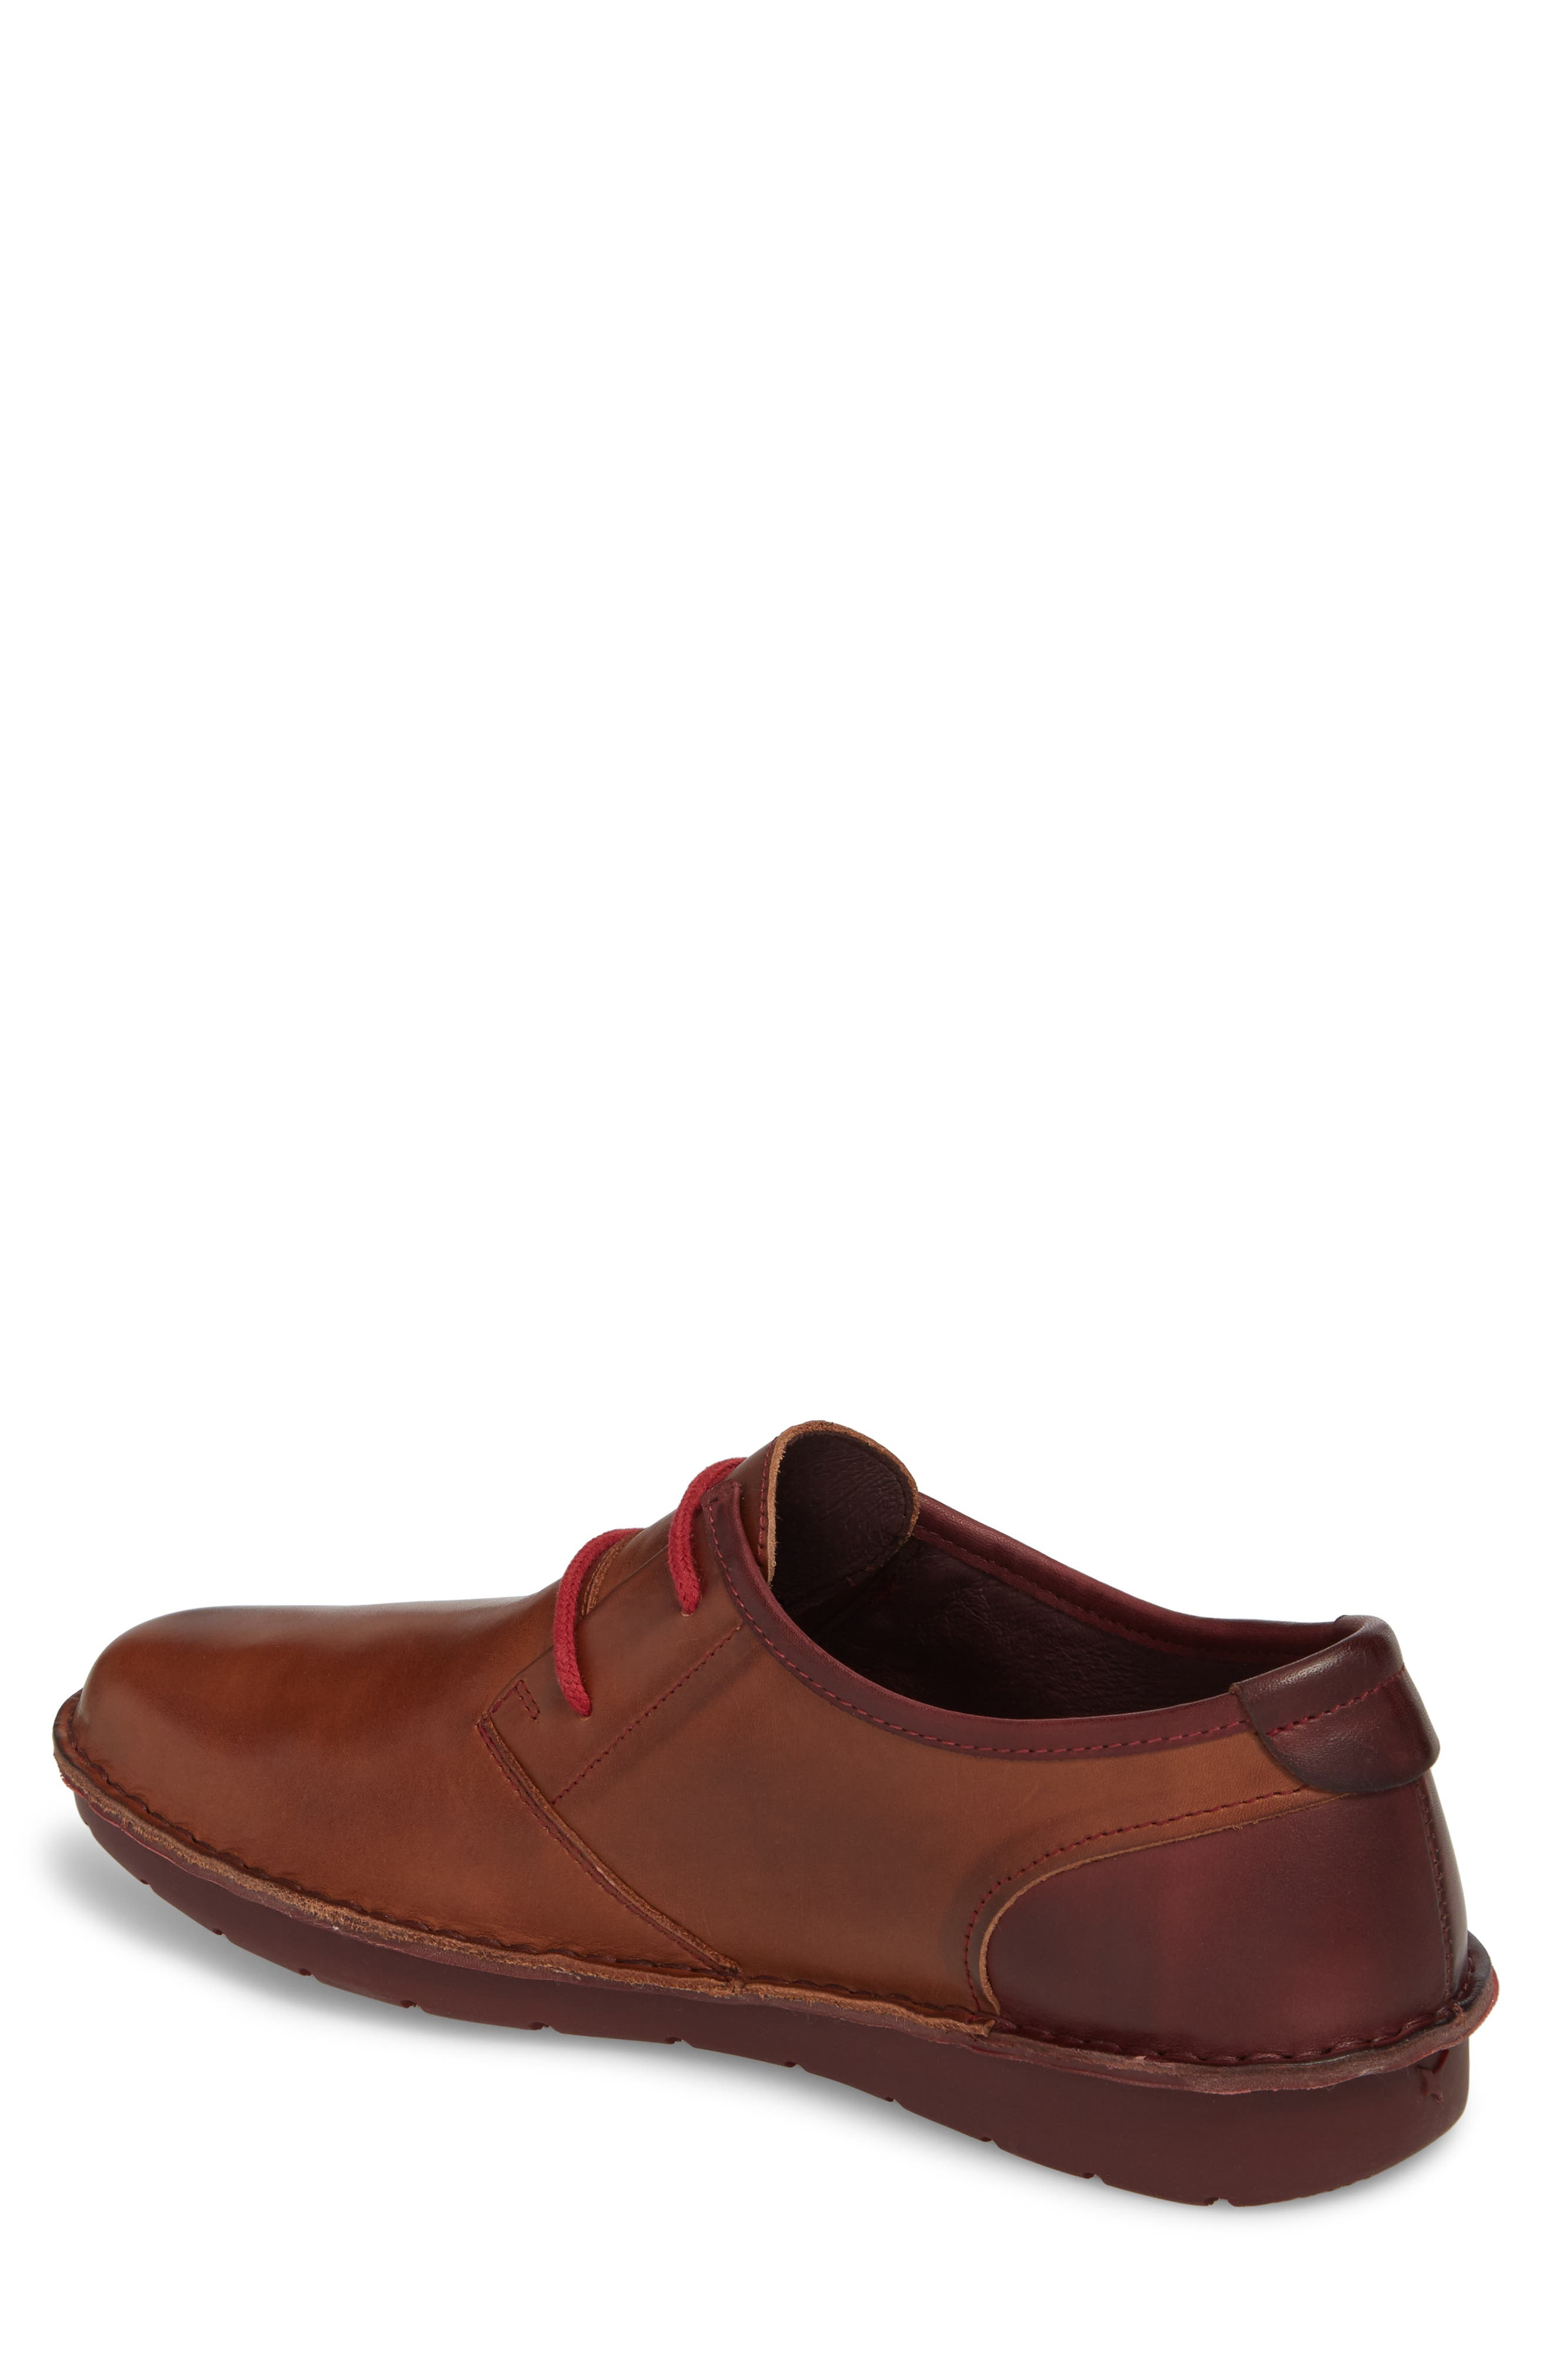 'Santiago' Plain Toe Derby,                             Alternate thumbnail 2, color,                             Cuero Leather